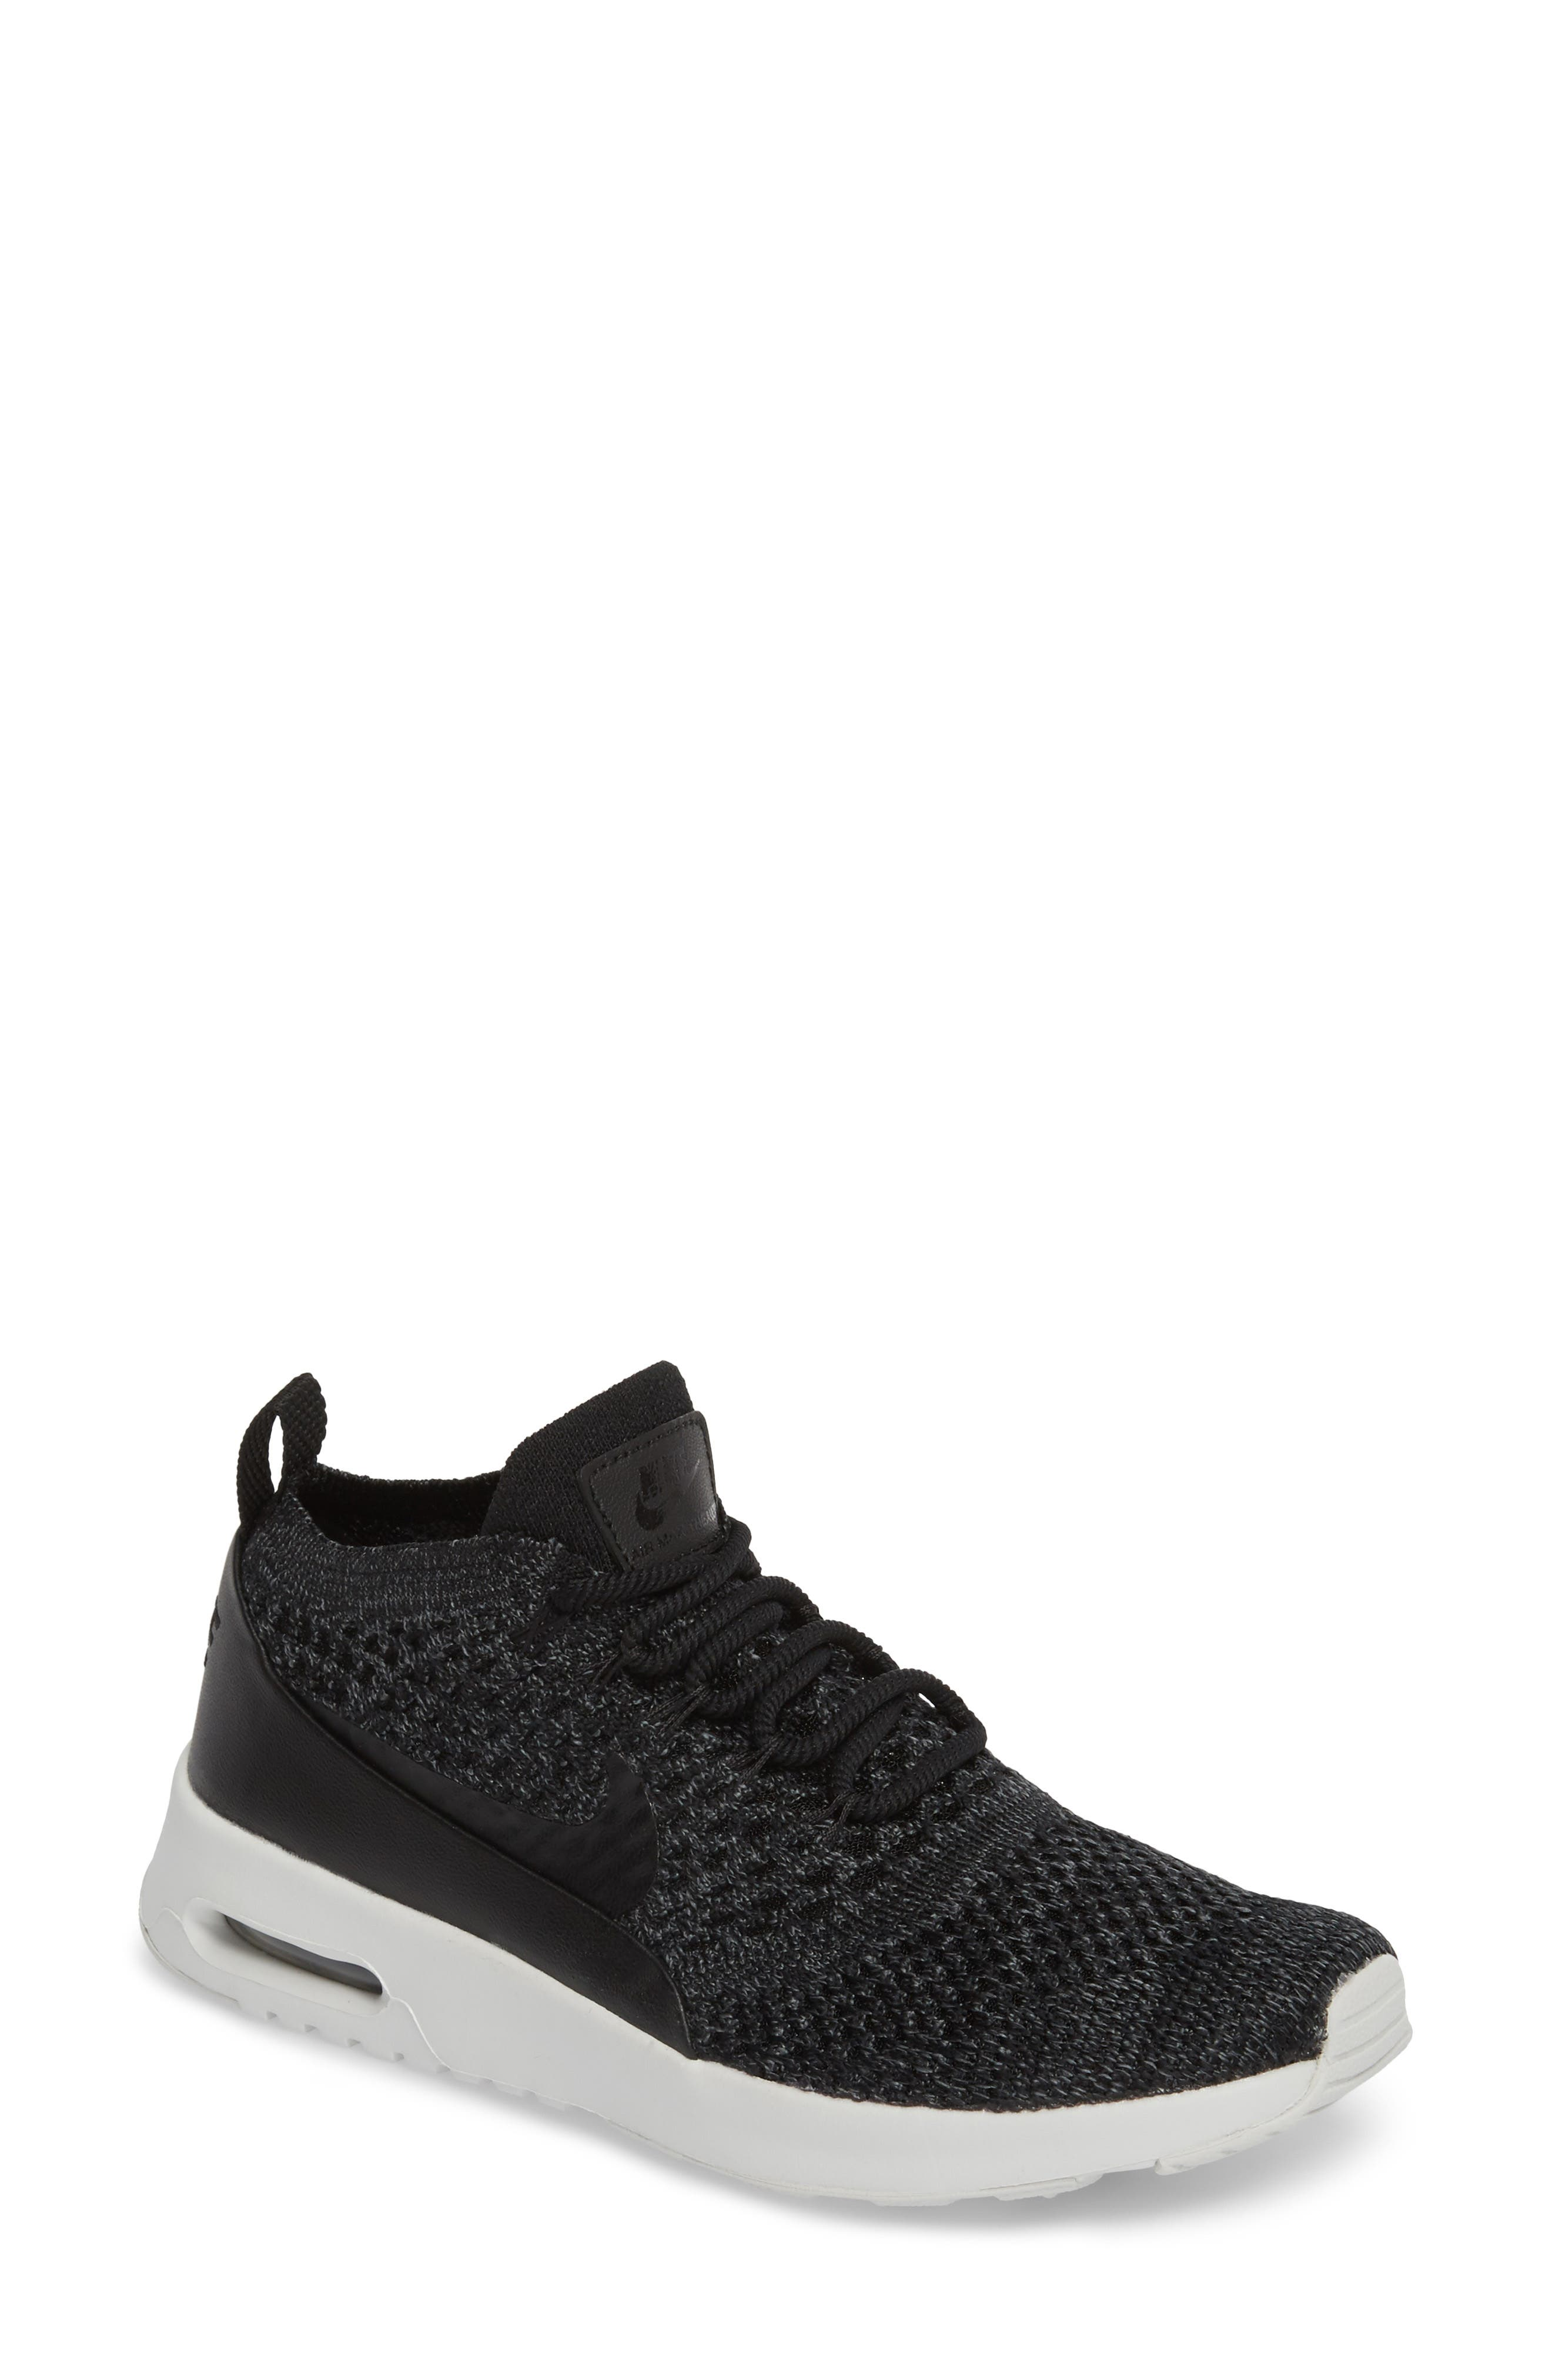 Air Max Thea Ultra Flyknit Sneaker,                         Main,                         color,